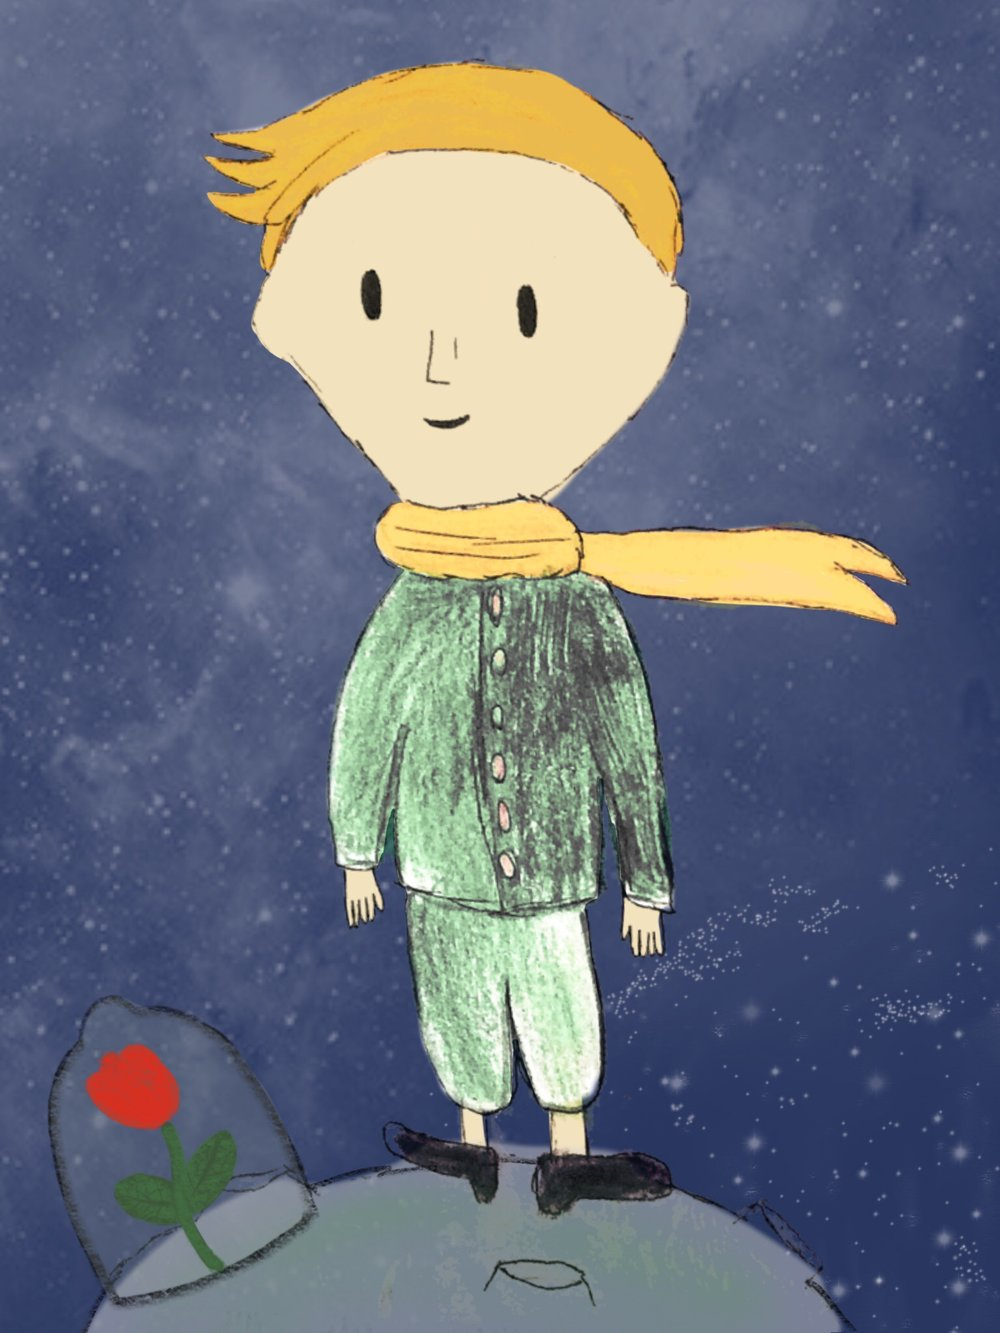 The Little Prince - Illustrated by Emma Meijer